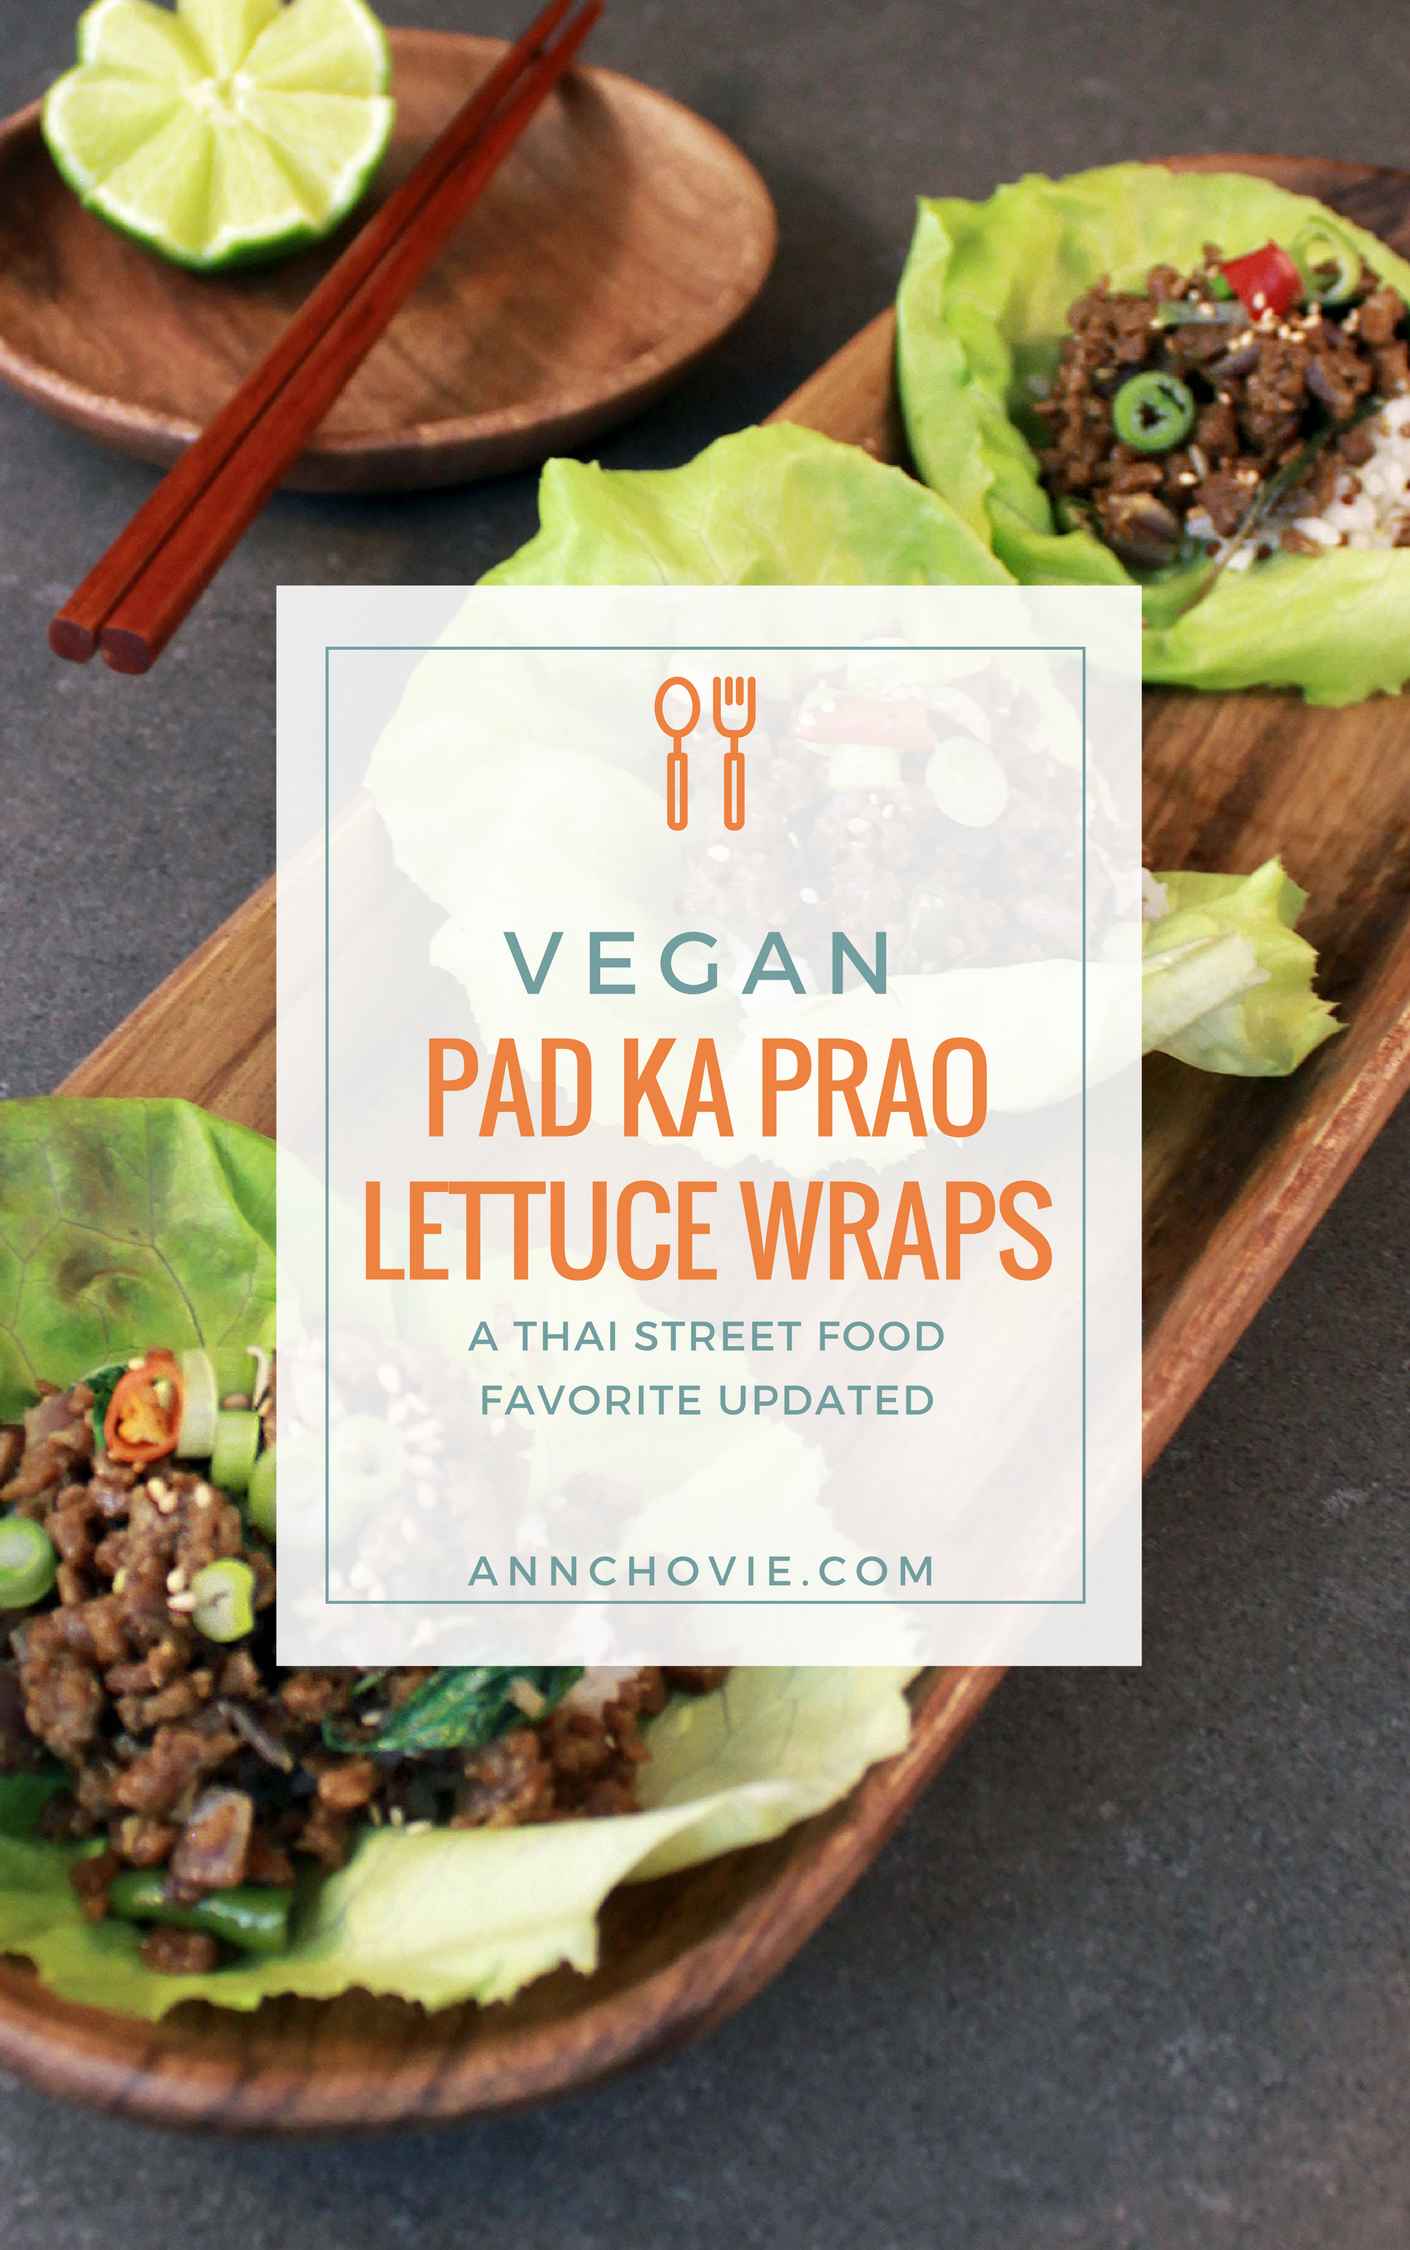 My delicious Vegan Thai Pad Ka Prao Lettuce Wraps, uses imitation meat, vegetarian mushroom sauce, and savory Thai chilis and basil. It's topped over rice and butter lettuce cups as fun lettuce wraps. Serve this as a healthy lunch, or as appetizers. The savory and spicy Thai flavors will keep you reaching out for more! | PAD KA PRAO LETTUCE CUPS | HEALTHY ASIAN LETTUCE WRAPS | SPICY THAI BASIL STIR FRY | SPICY THAI RECIPE | HEALTHY VEGAN RECIPE |